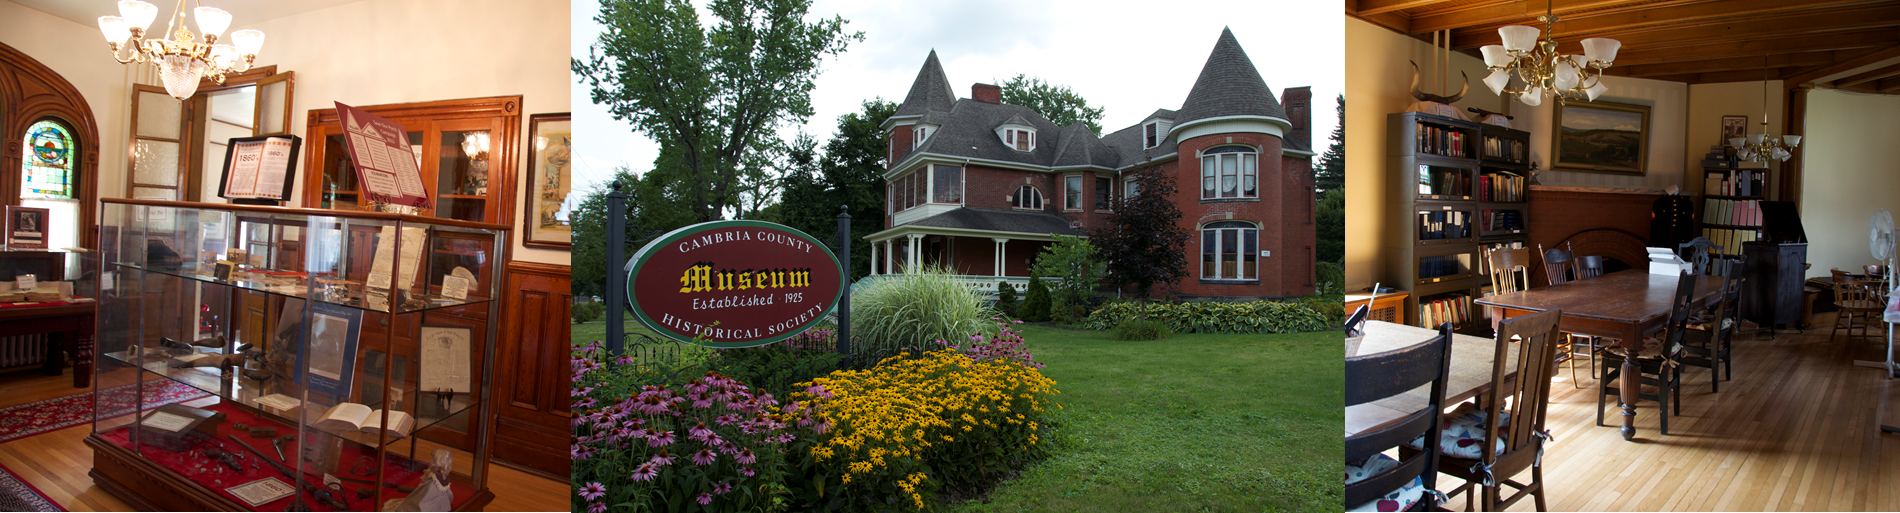 Visit Johnstown Pa | Cambria County Historical Society And Museum